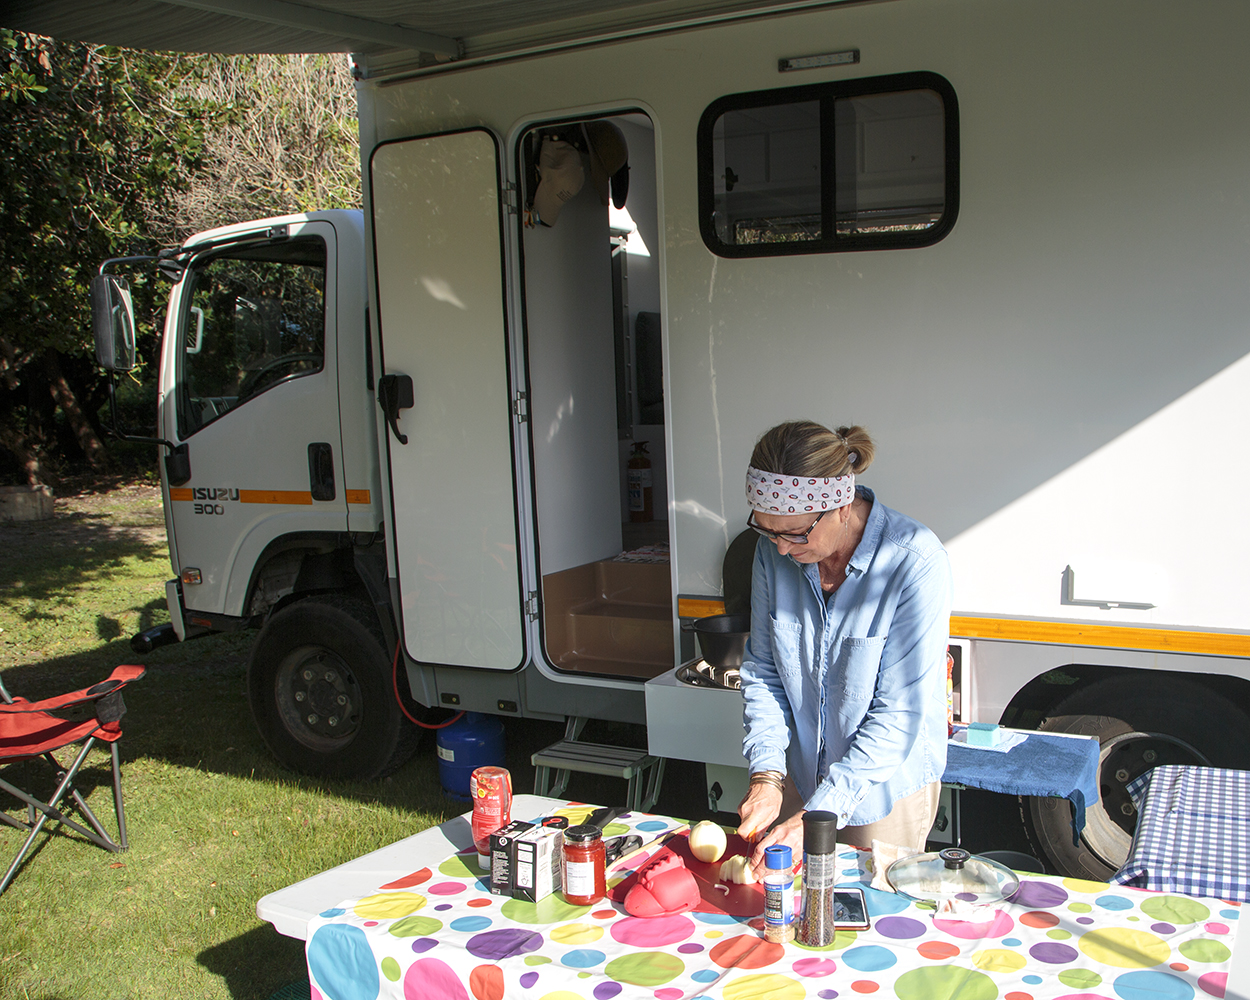 Glamping In Style - Have Keys and Wheels Will Travel - Image 19